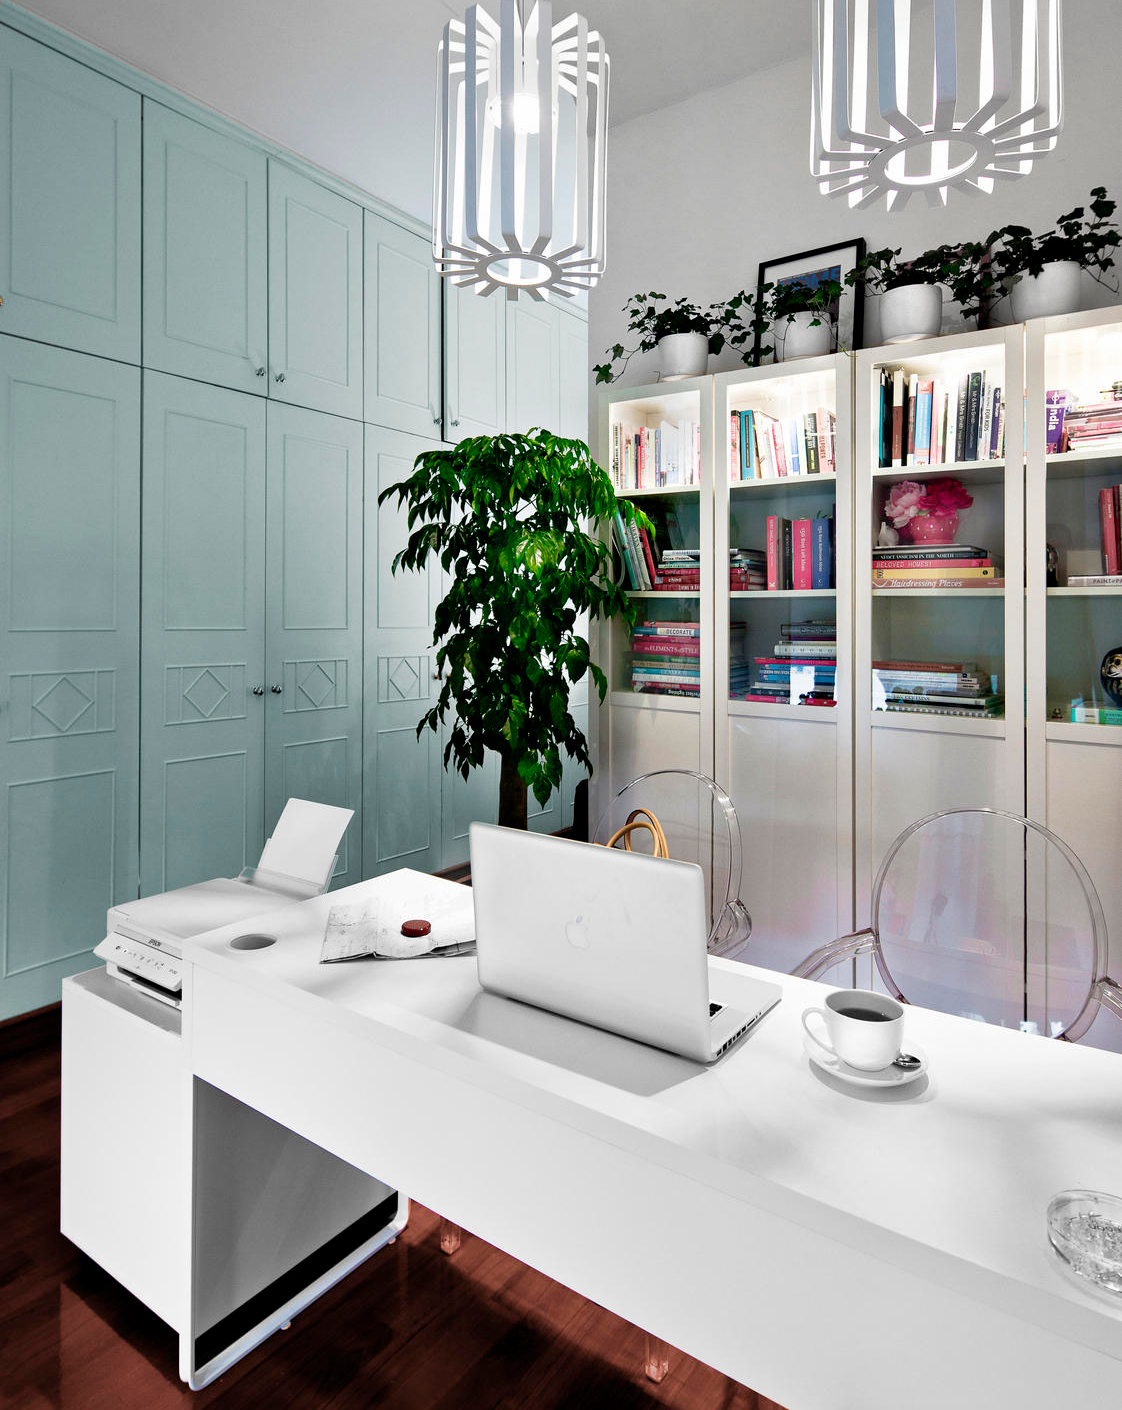 Comfort zone post magazine south china morning post - Master bedroom study table ...